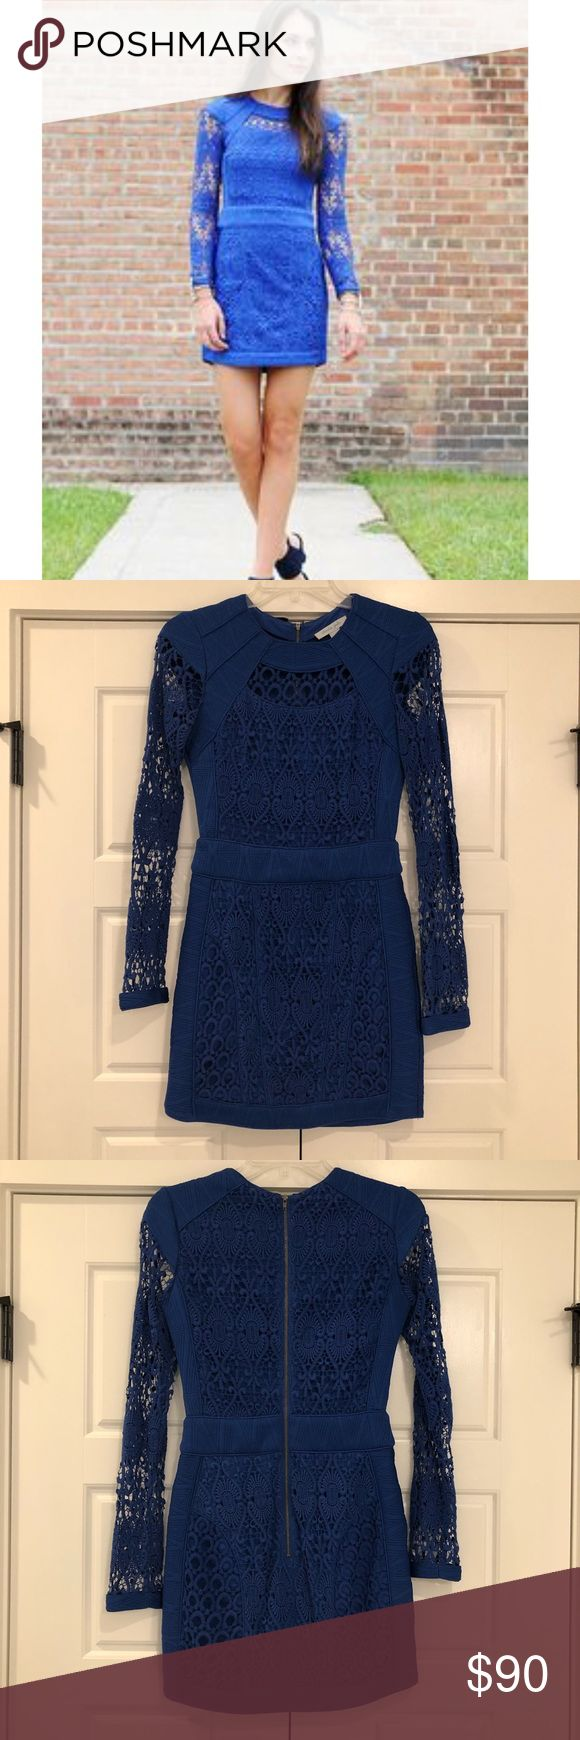 Charlie Jade Blue Lace Dress Beautiful Charlie Jade blue lace dress. I wore this for my rehearsal dinner. One of the lace sections has a slight pull-close up photo included. Charlie Jade Dresses Long Sleeve